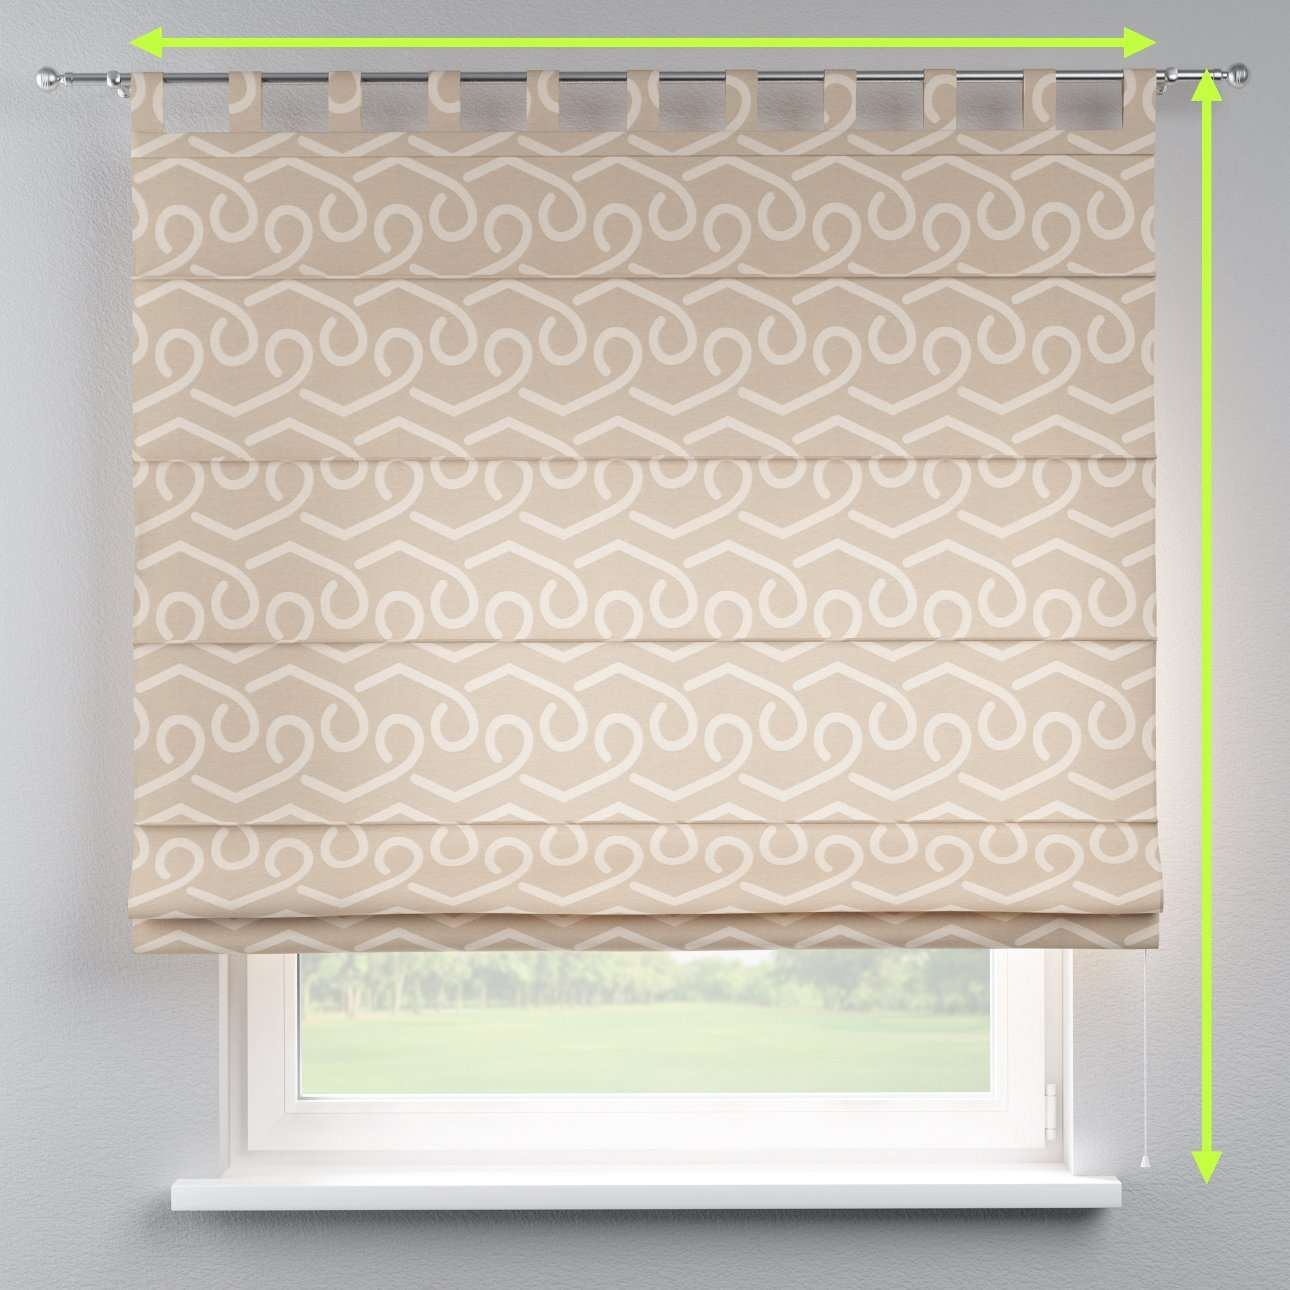 Verona tab top roman blind in collection Rustica, fabric: 140-58